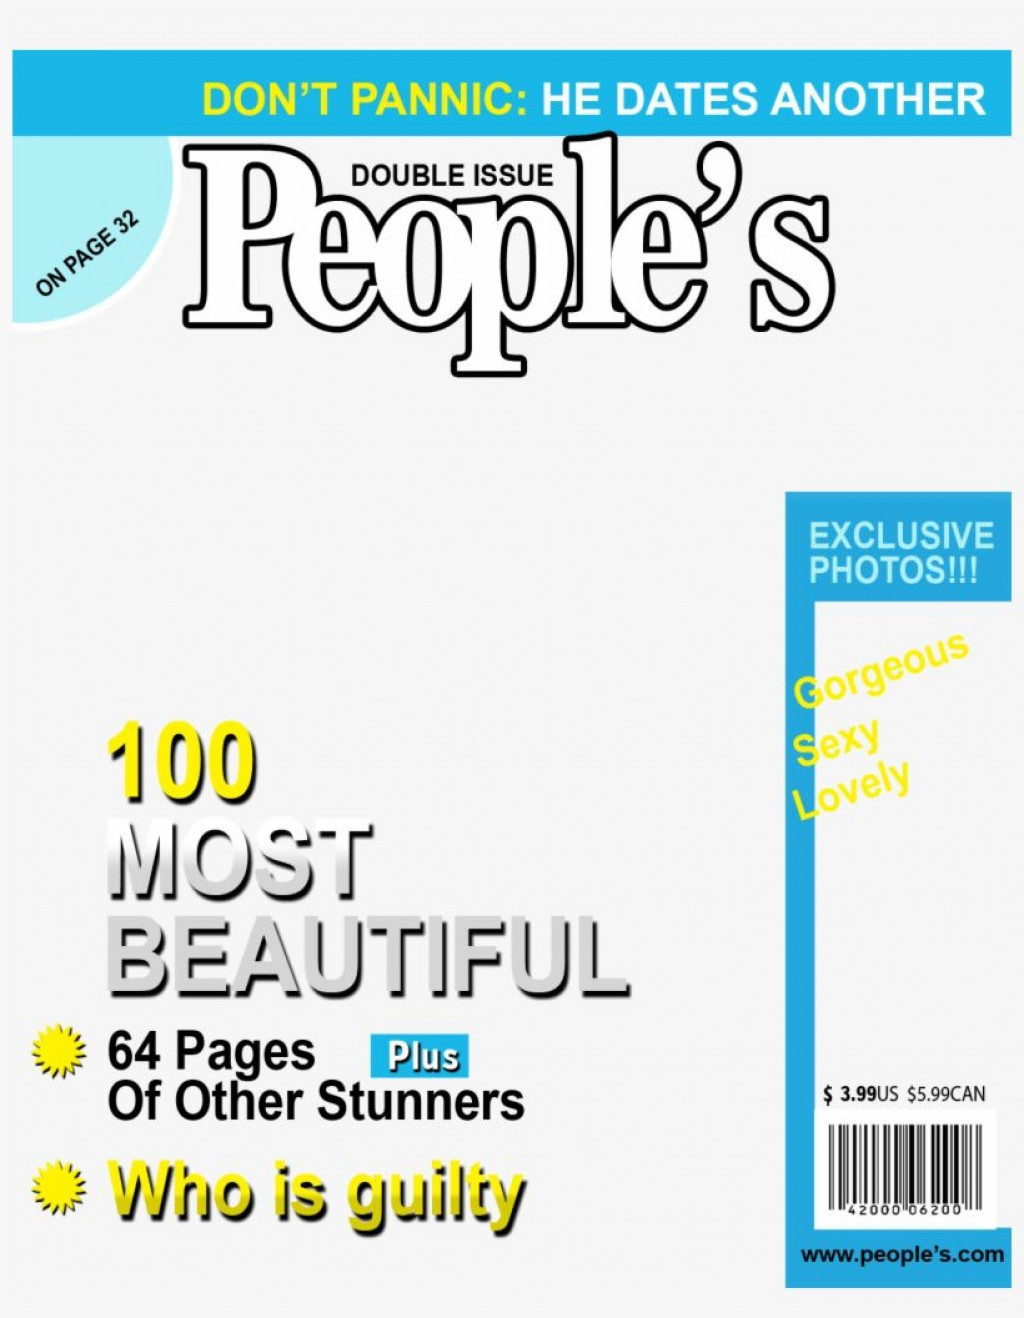 005 Astounding Free Fake Magazine Cover Template High Resolution  TimeLarge